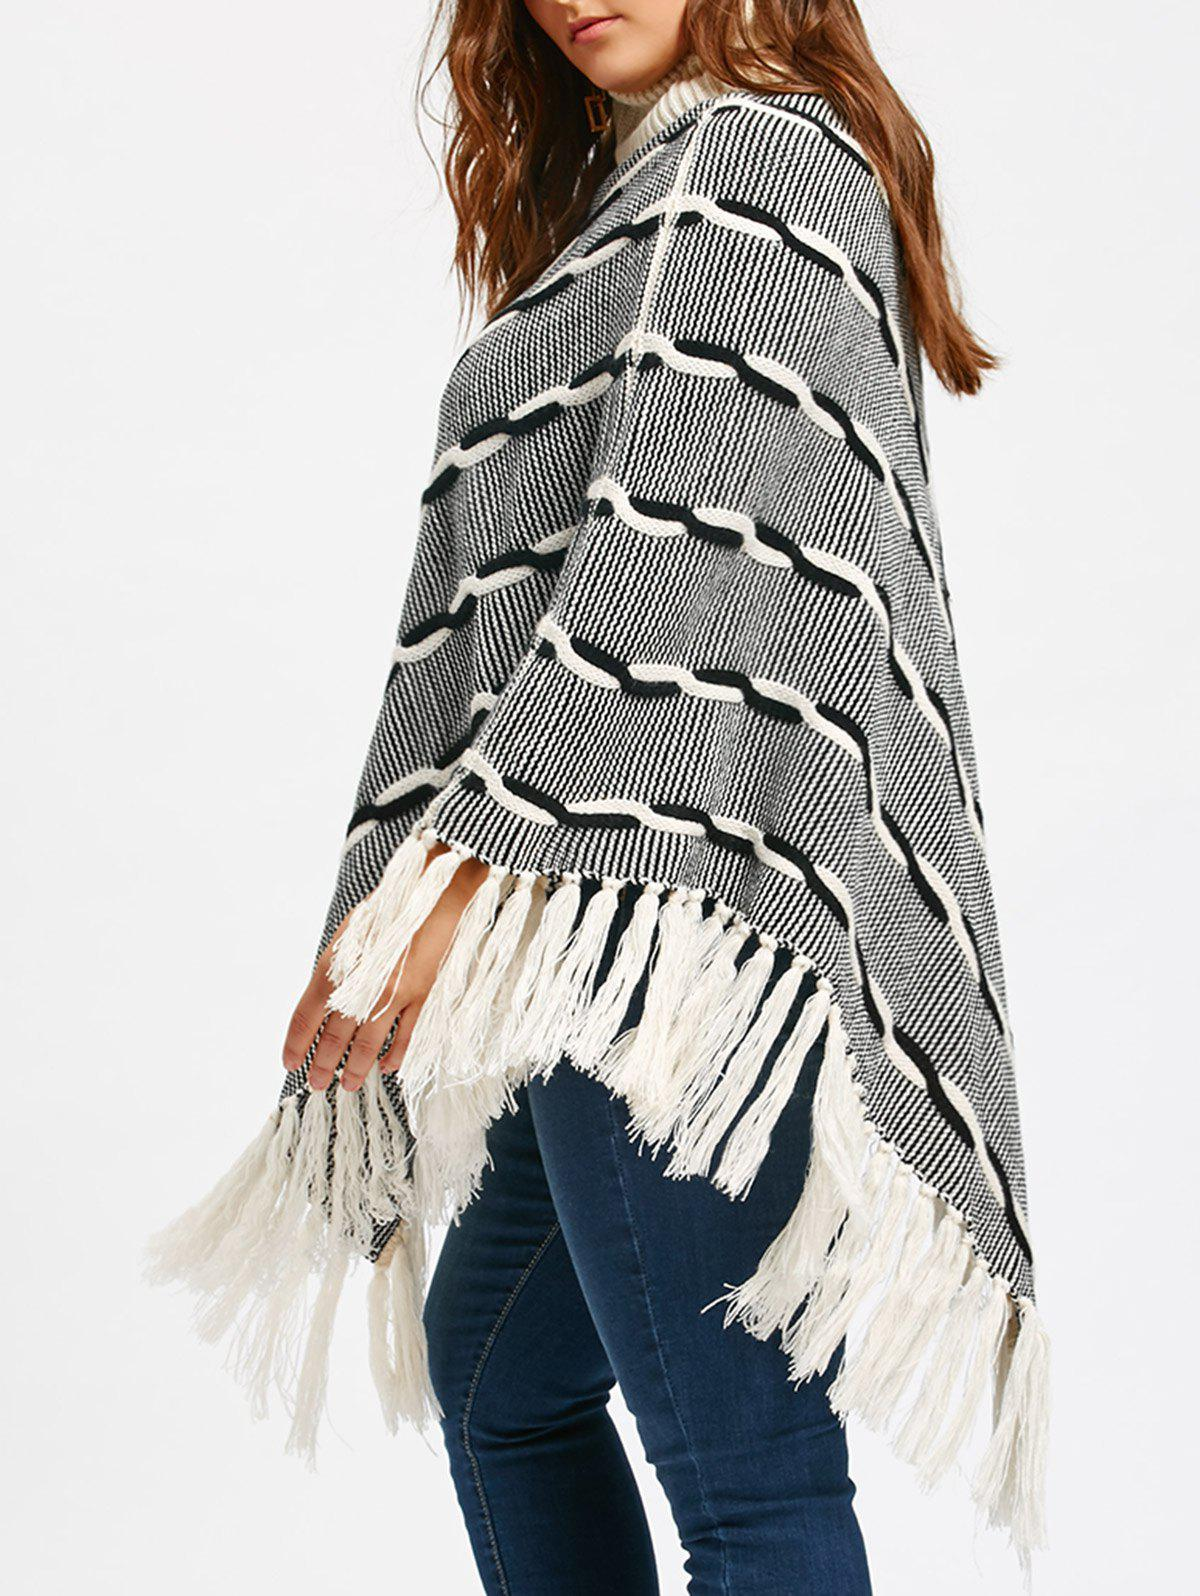 Tassel Plus Size Stripe Turtleneck Poncho Sweater - WHITE / GREY 5XL